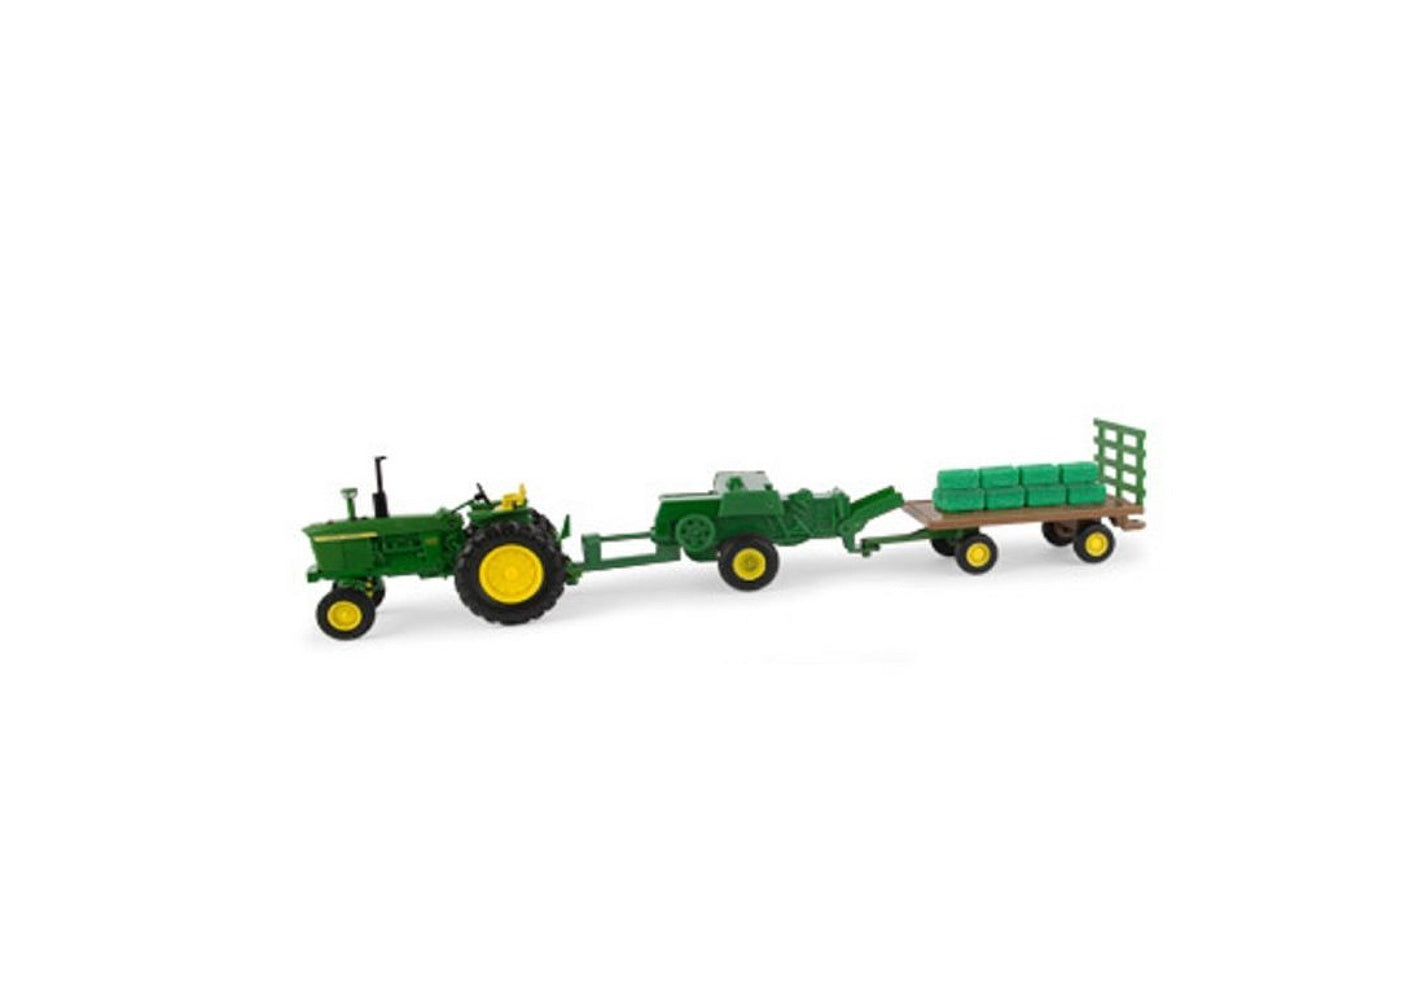 1/32 John Deere Haying Set Toy - LP68178